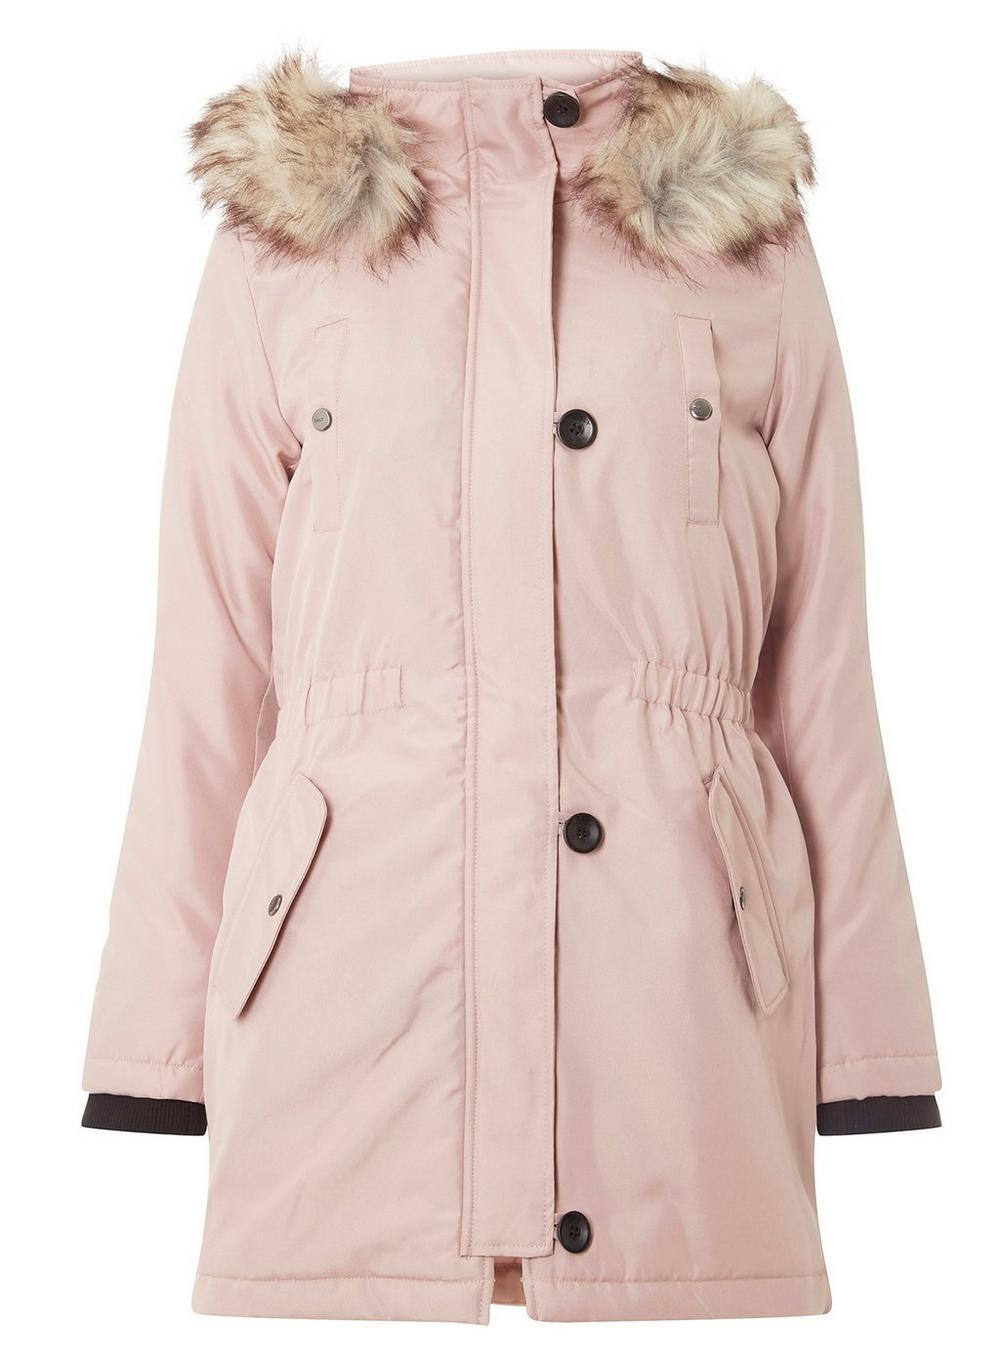 84d85a7b54c Lyst - Dorothy Perkins Only Pink Fur Hood Parka Coat in Pink